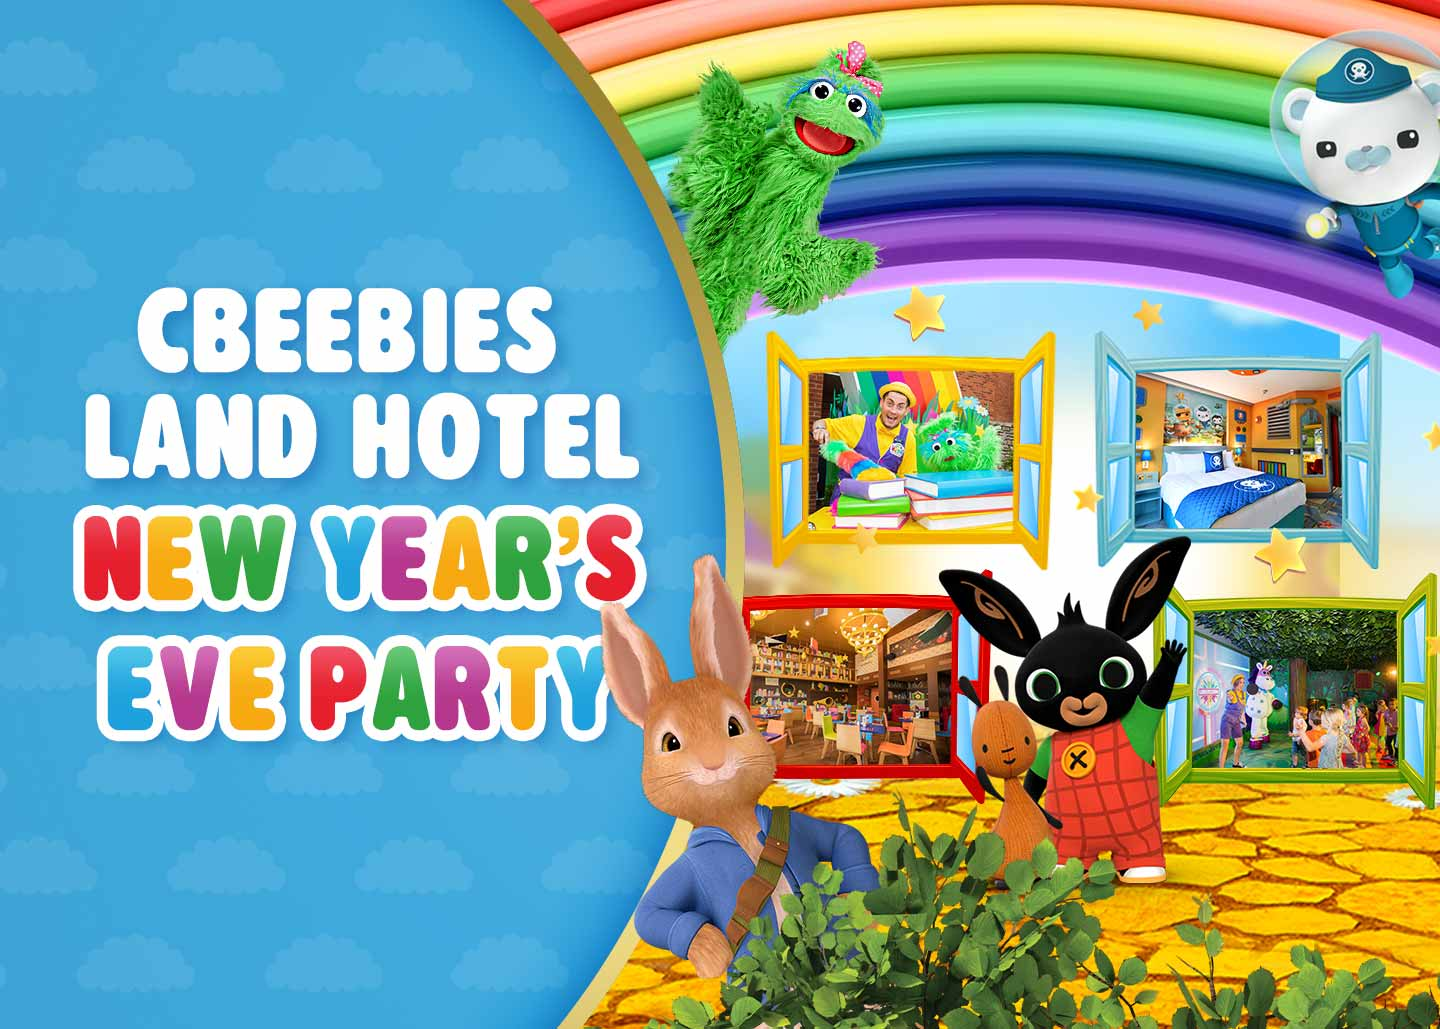 CBeebies Land Hotel New Year's Eve Party at the Alton Towers Resort